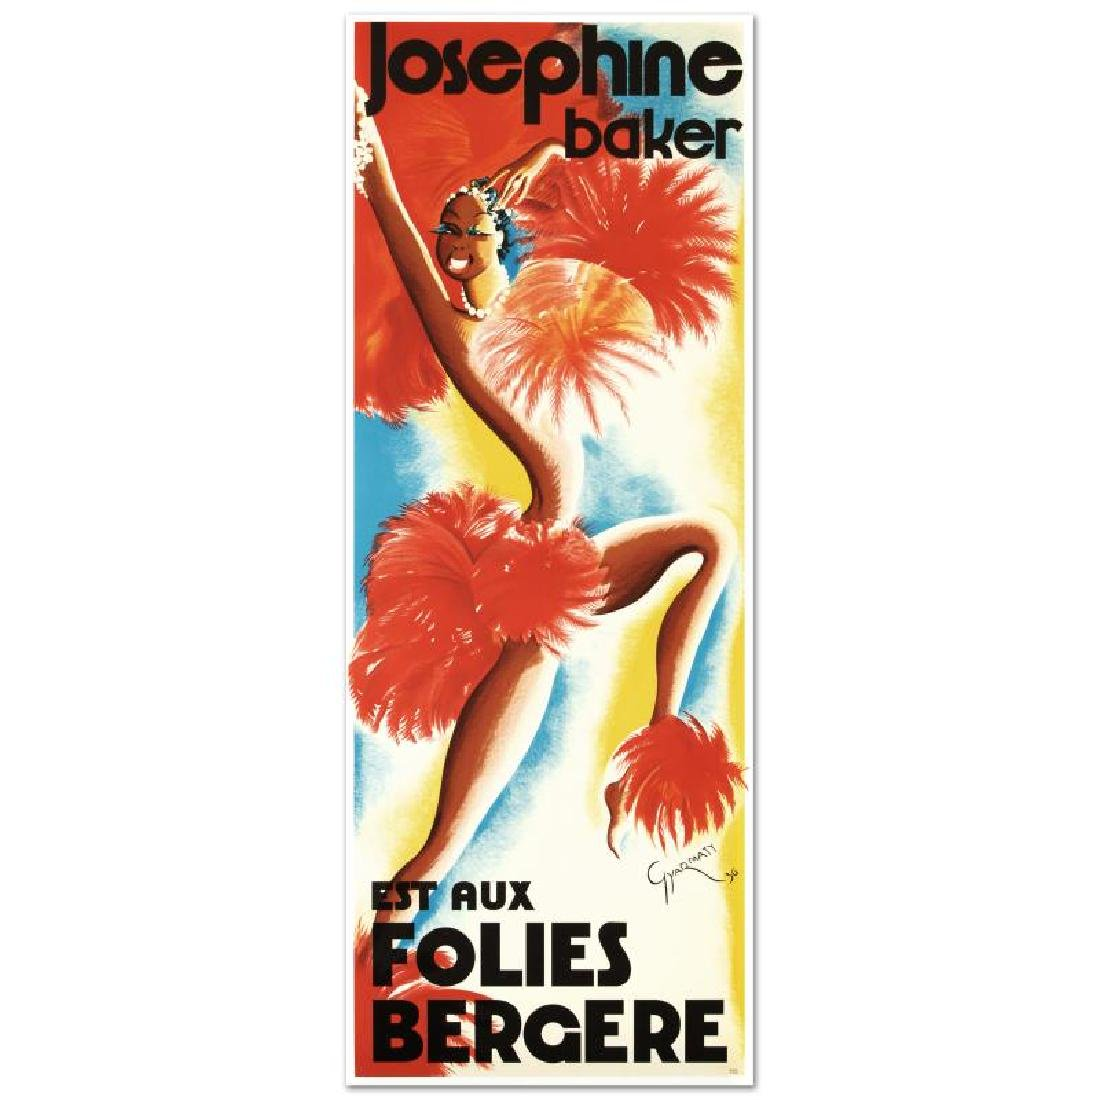 """Folies Bergere Josephine Baker"" Hand Pulled Lithograph"